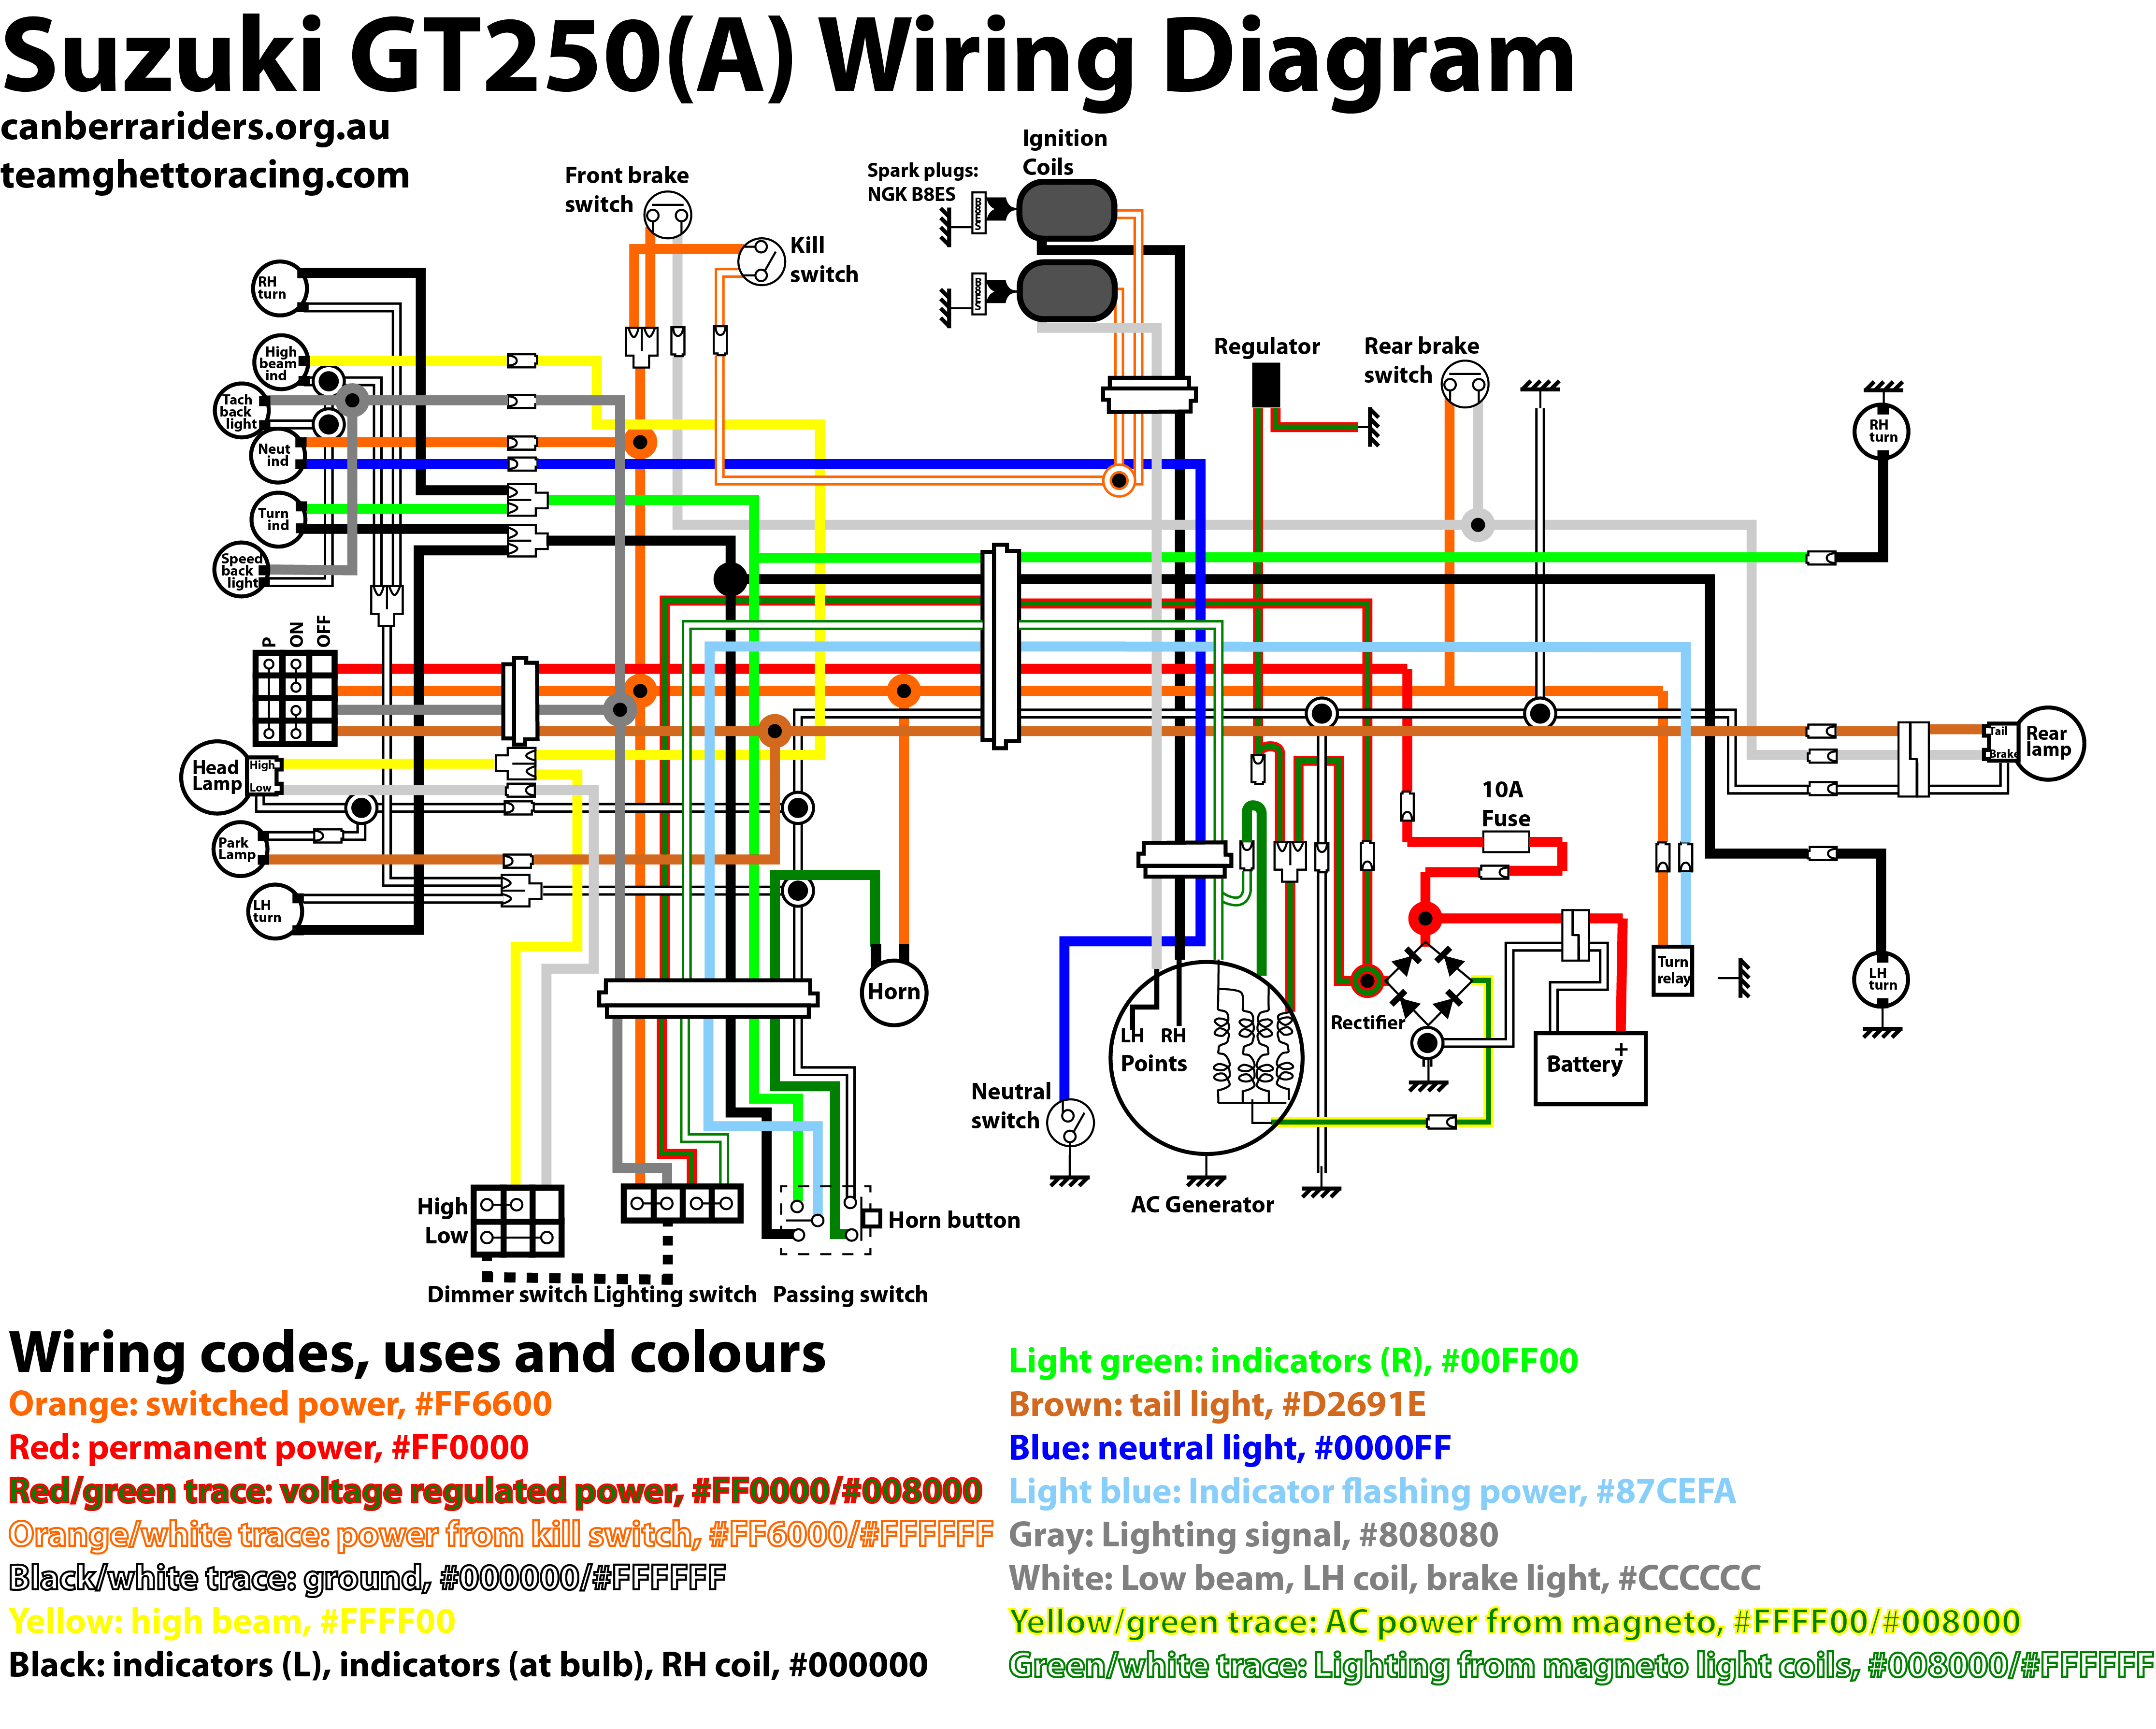 Suzuki_GT250A_Wiring_Diagram?resize=665%2C533 wiring diagram 2000 suzuki rm 1999 suzuki rm, 125 suzuki rm, 2001 2001 Suzuki Intruder 1400 Specifications at creativeand.co